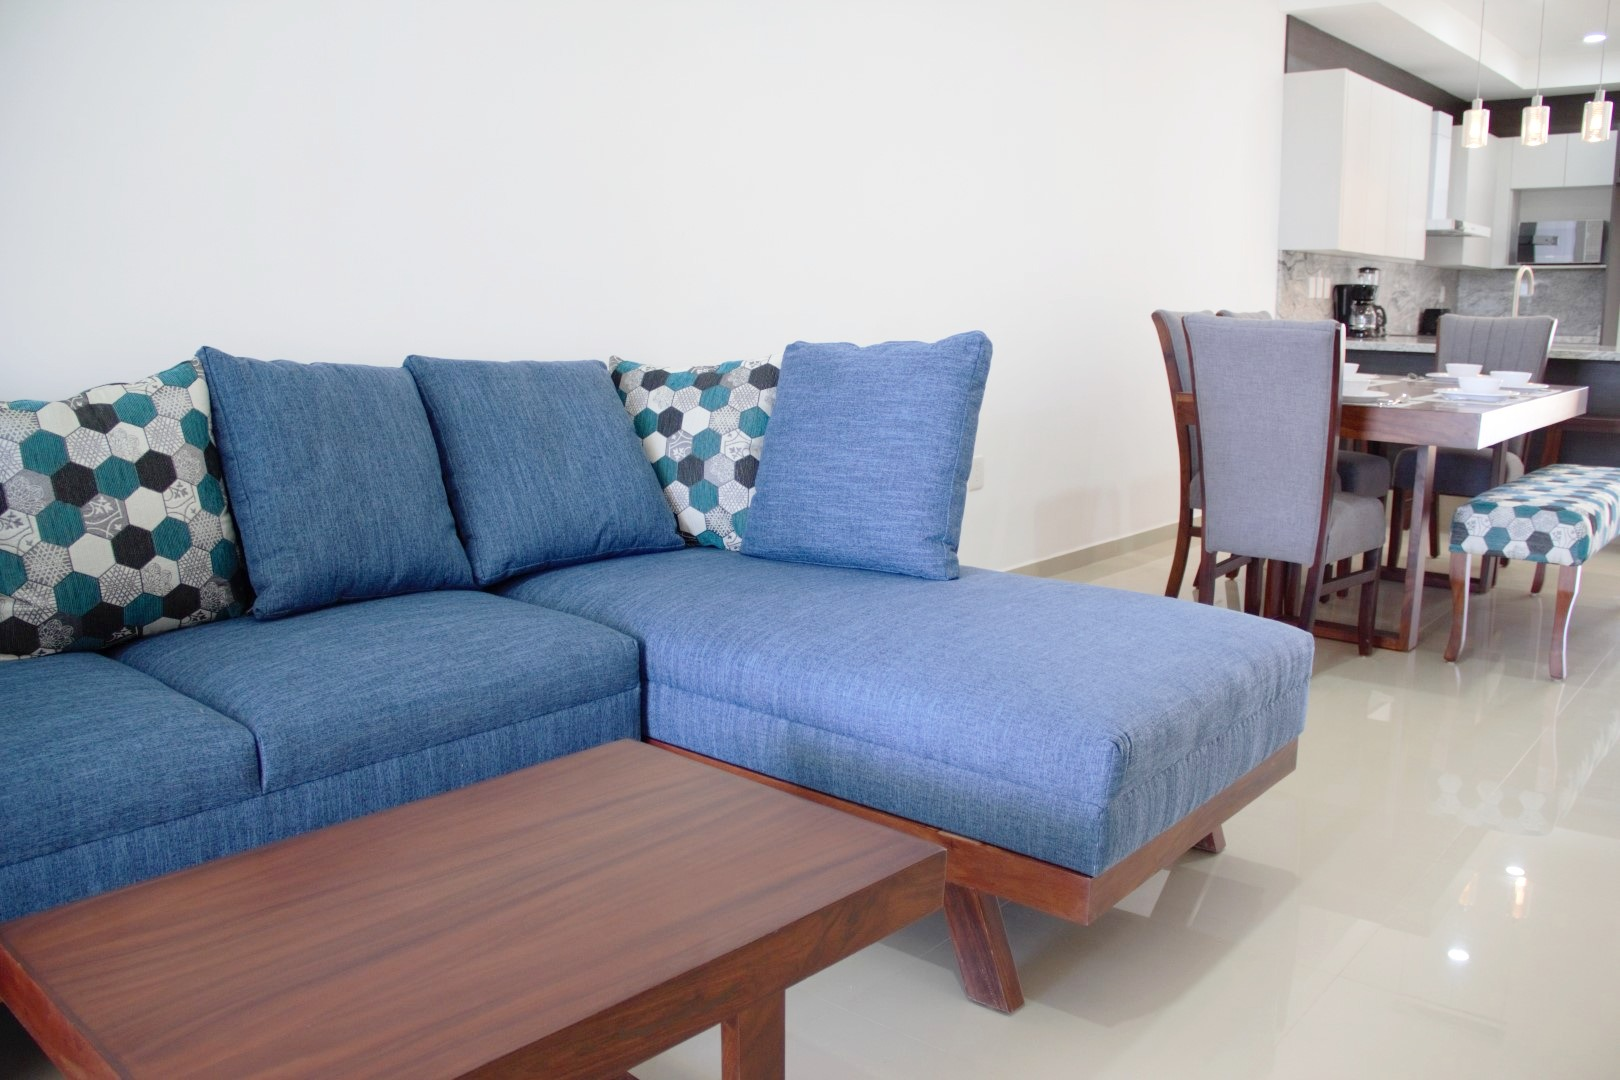 Sectional sofa and coffee table.